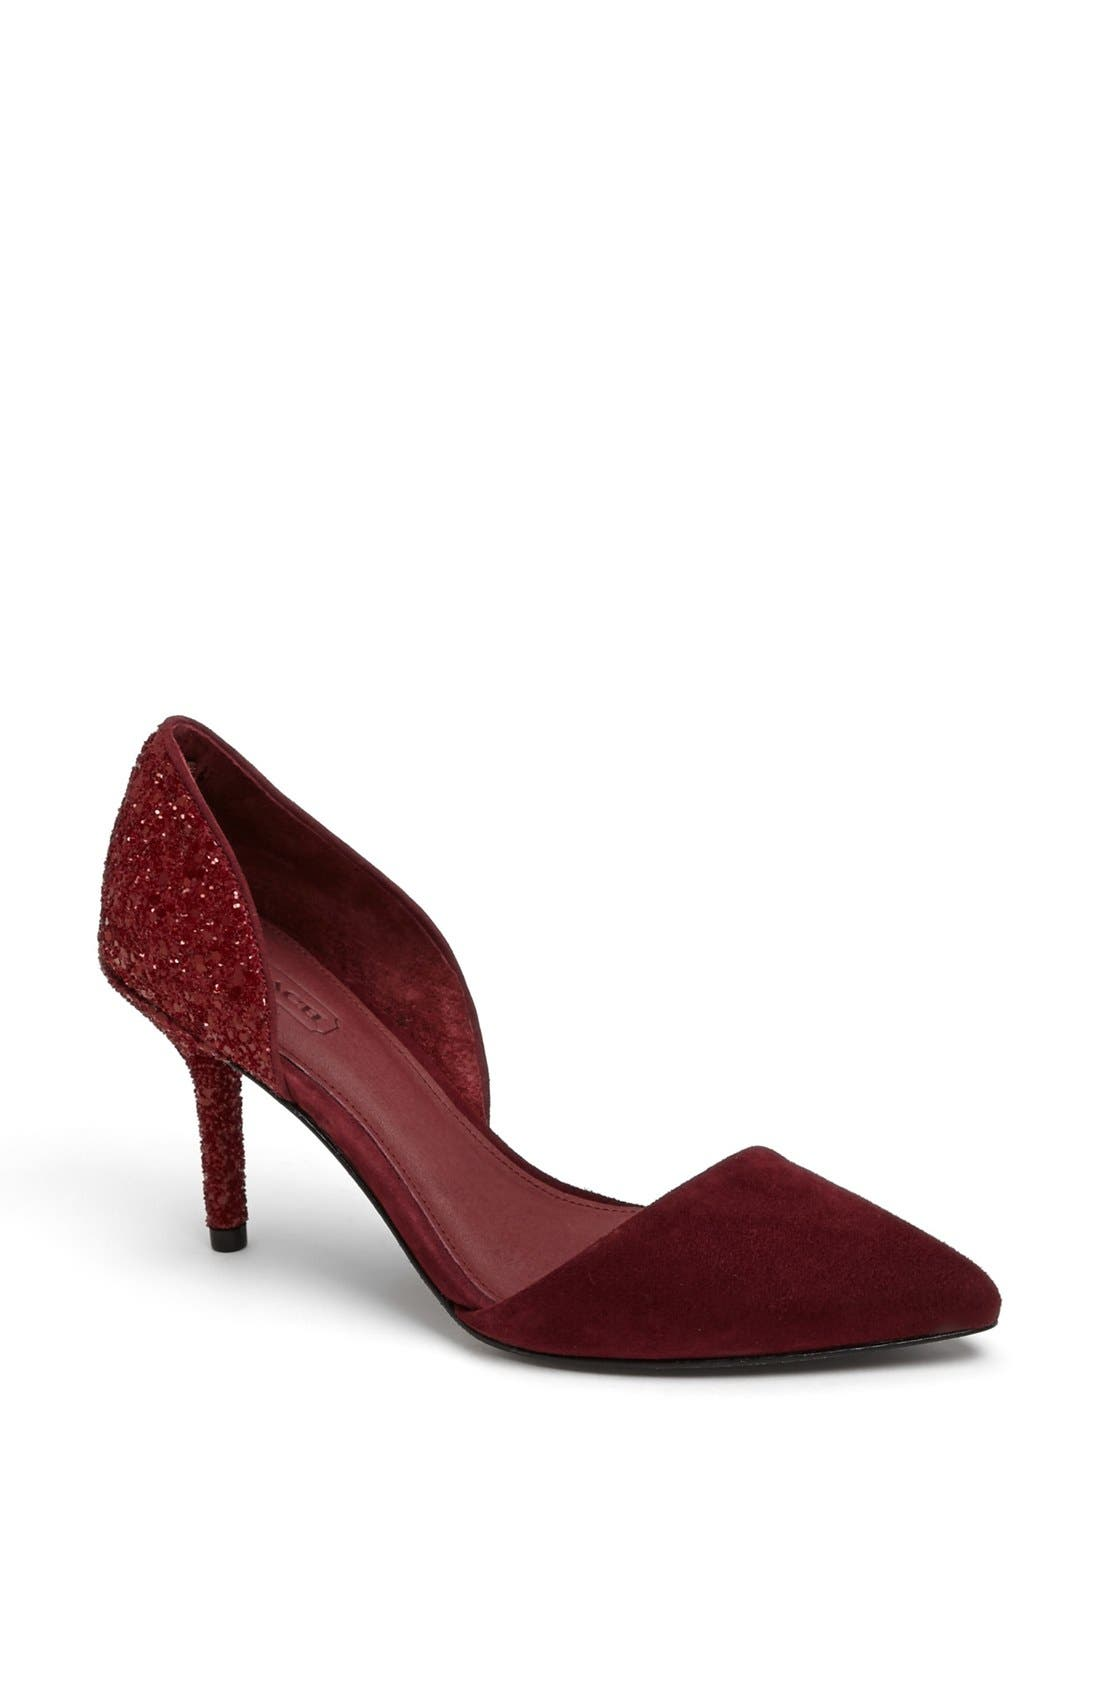 Alternate Image 1 Selected - COACH 'Camille' Pump